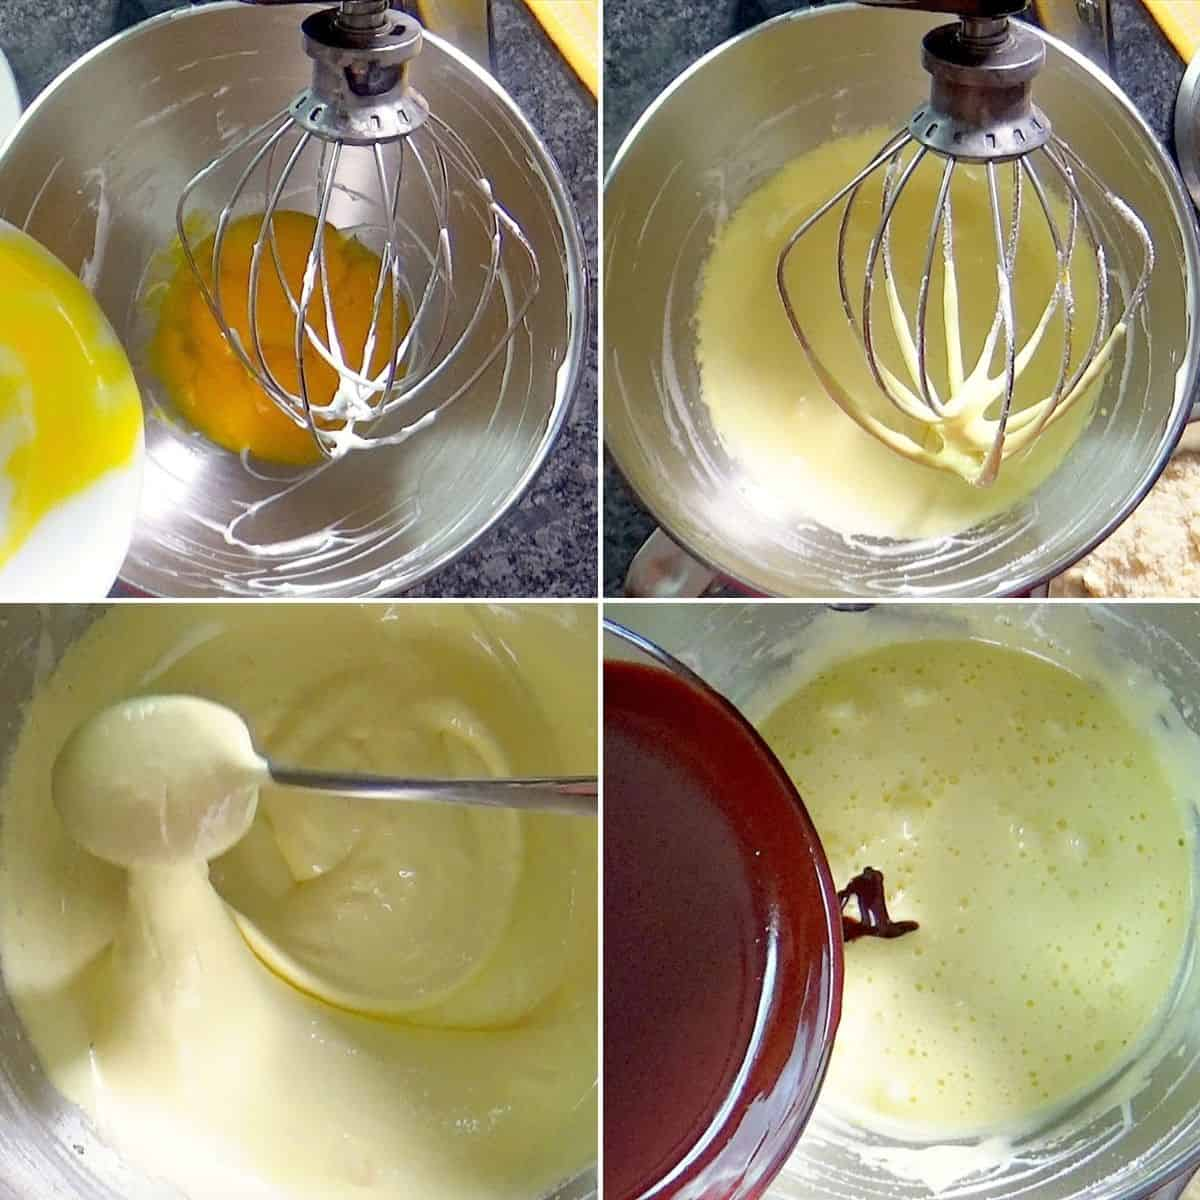 Whipping egg yolks and adding melted chocolate.